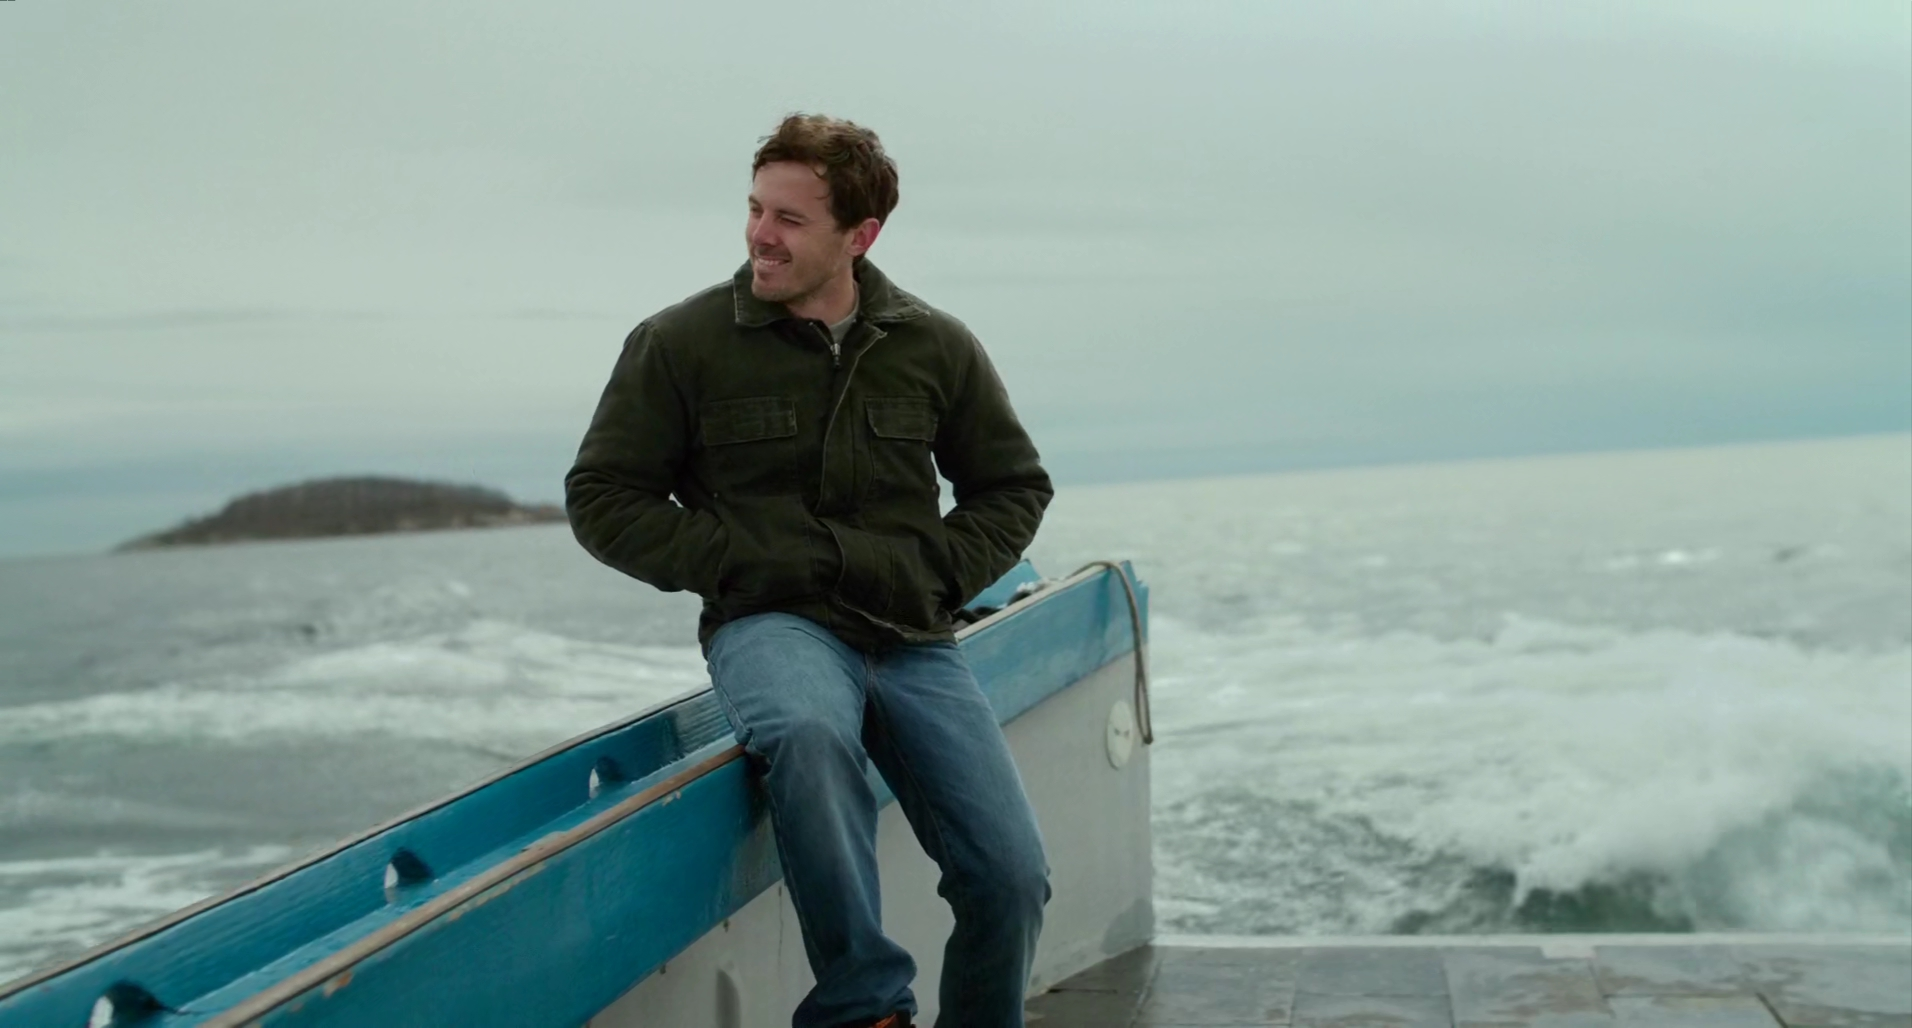 http://bayanbox.ir/view/2146510793231179142/manchester.by.the.sea.2016.1080p.web.dl.dd5.1.hevc.x265.rmteam-2-163588-2017-06-29-01-23-52.jpg